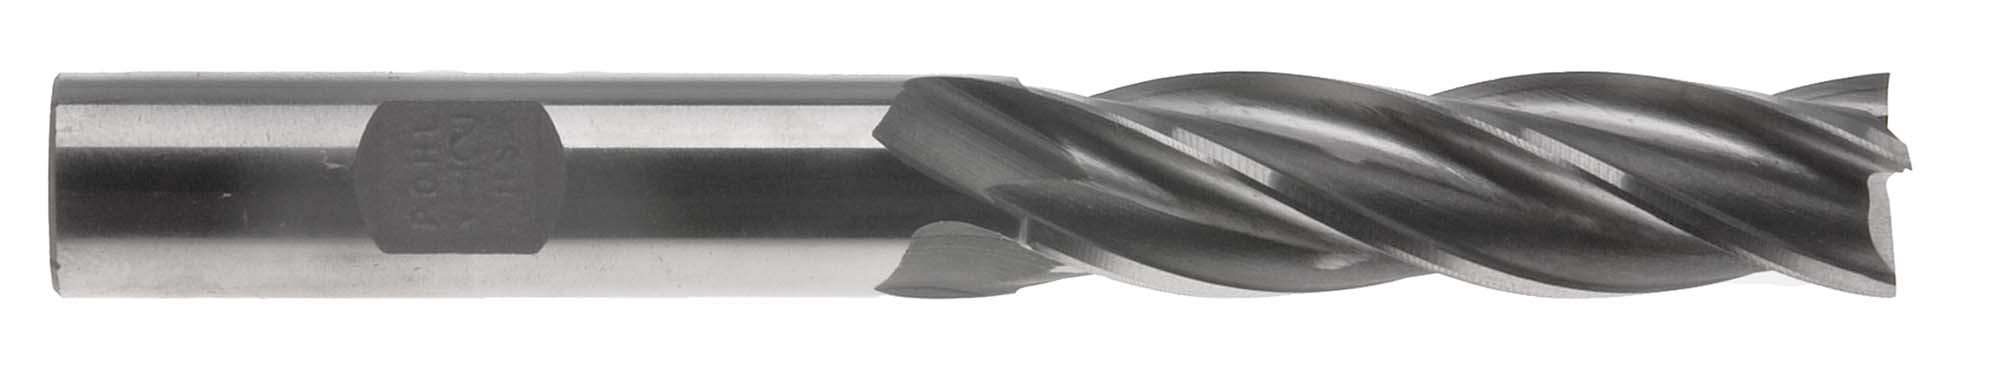 "EM-FL28  7/8"" 4 Flute Long End Mill - 7/8"" Shank, High Speed Steel"